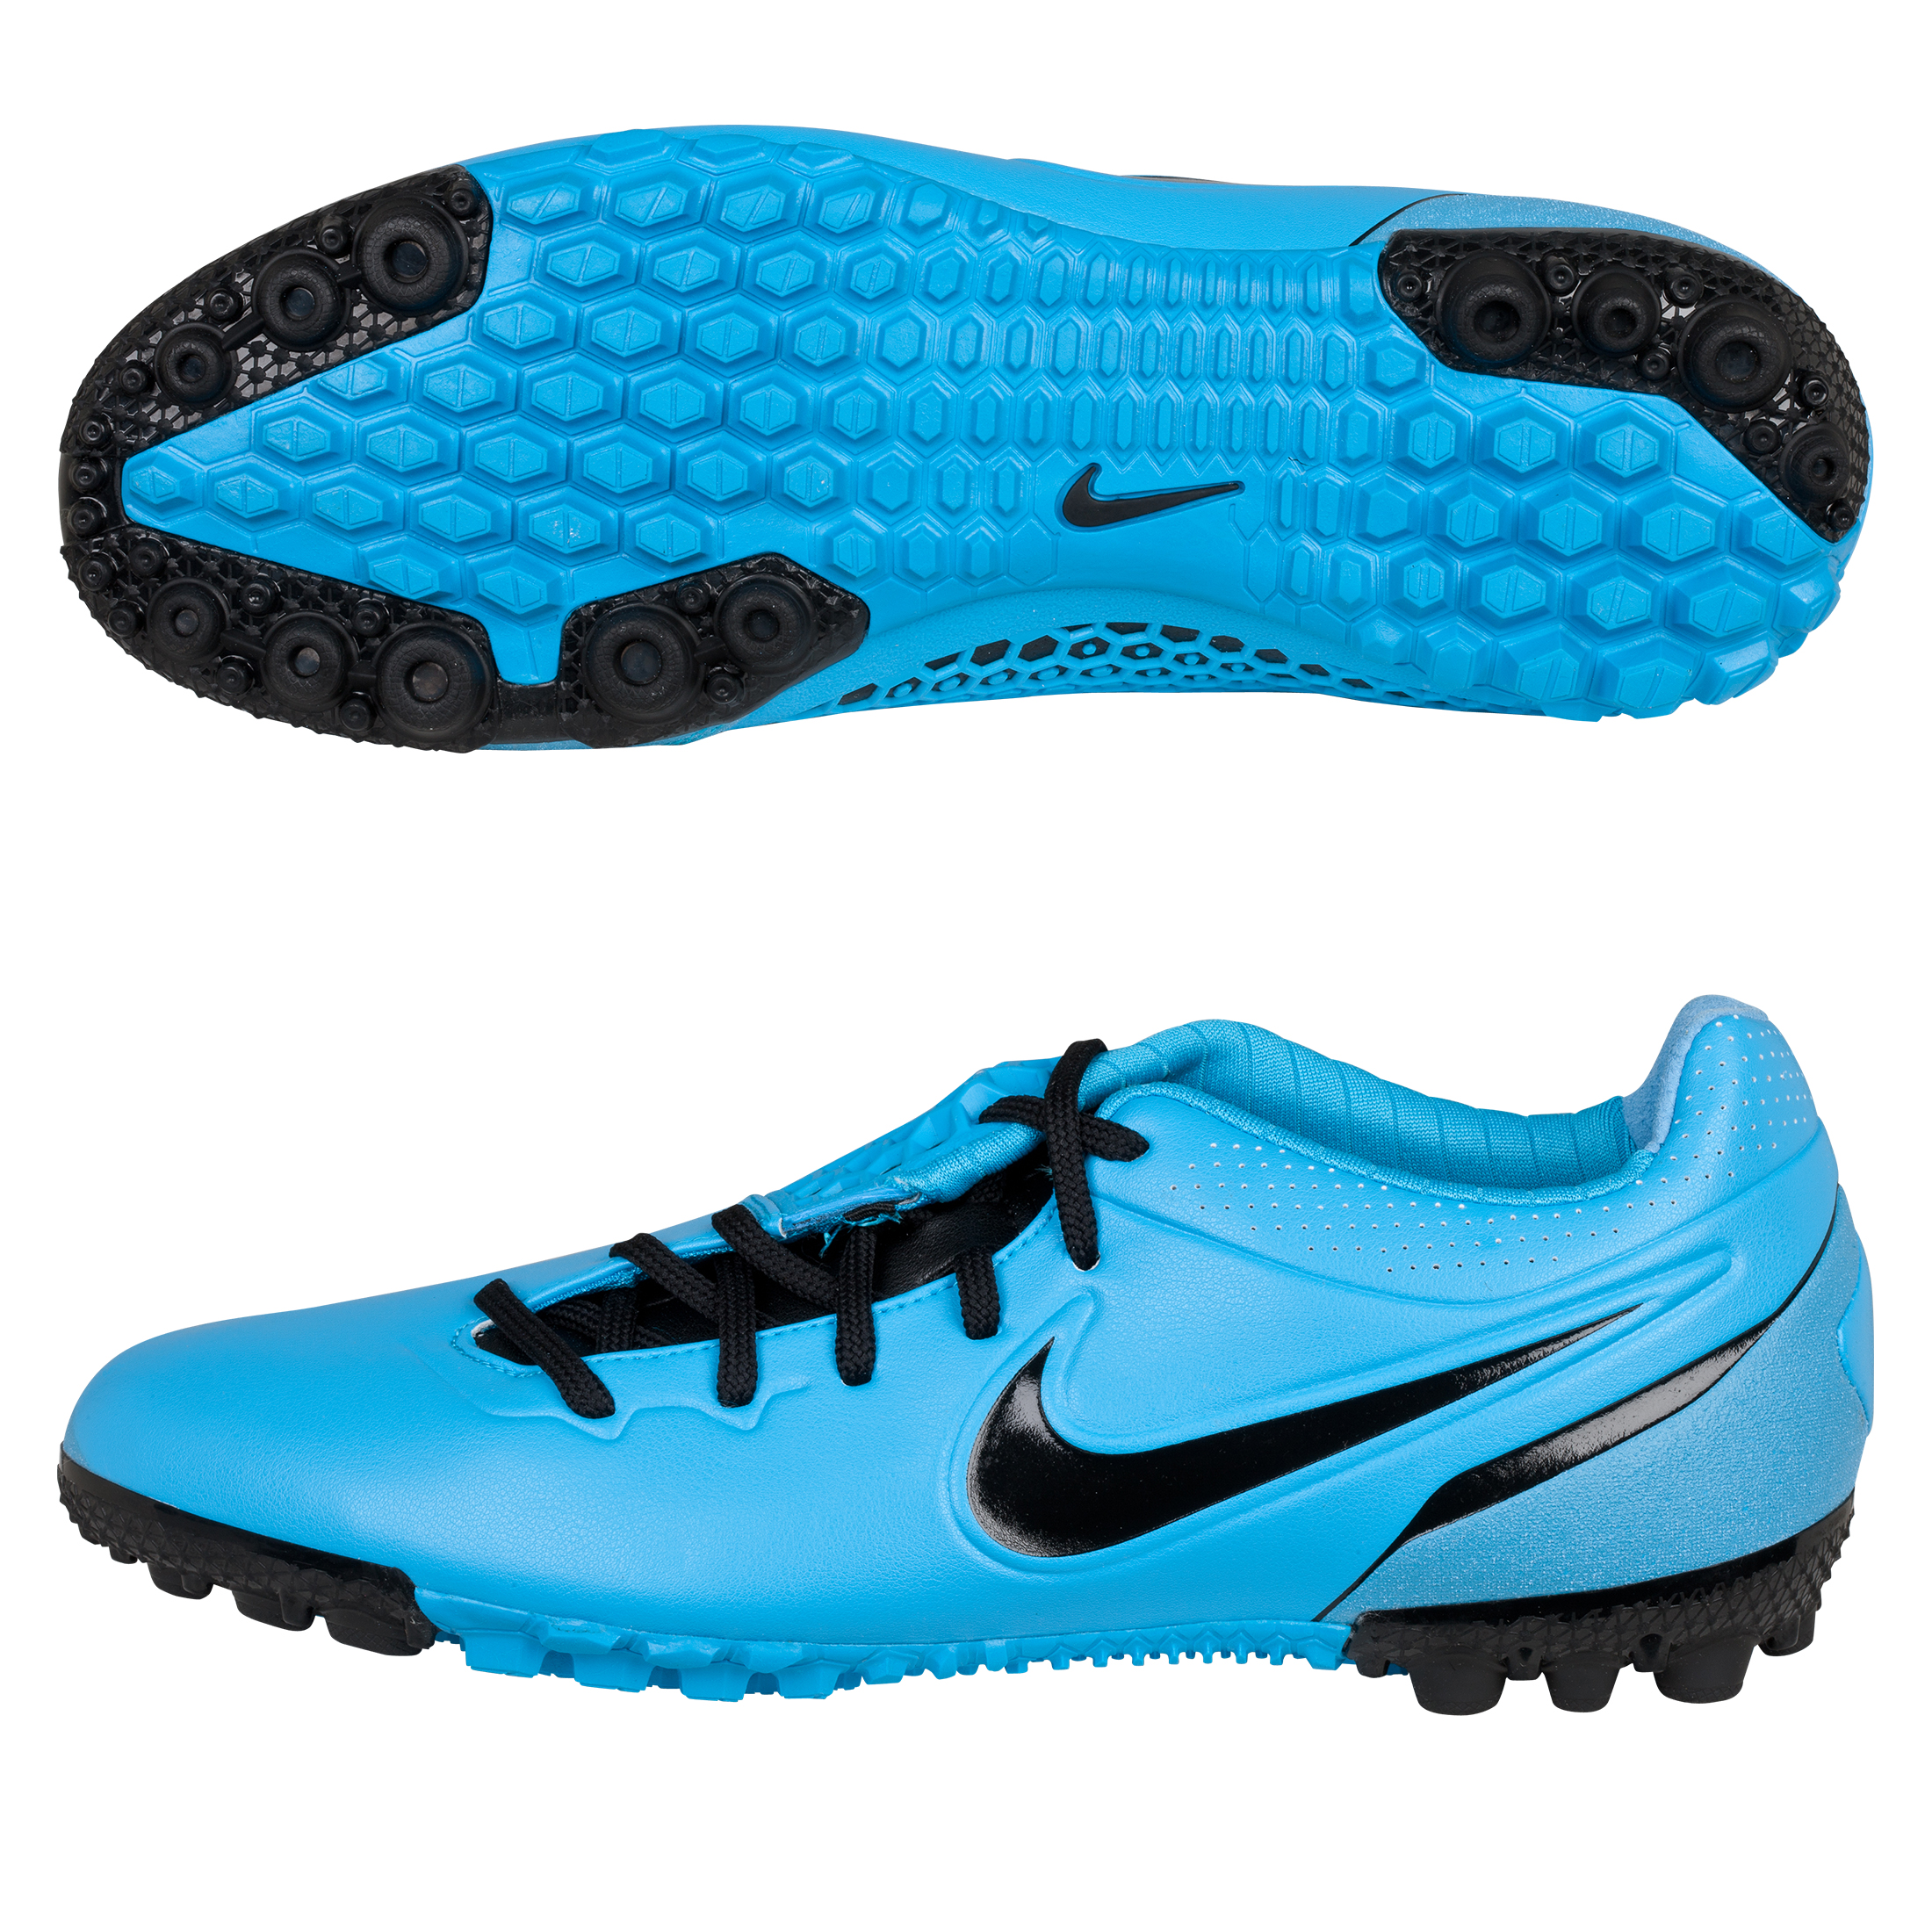 Nike5 Bomba Finale Trainers - Current Blue/Black